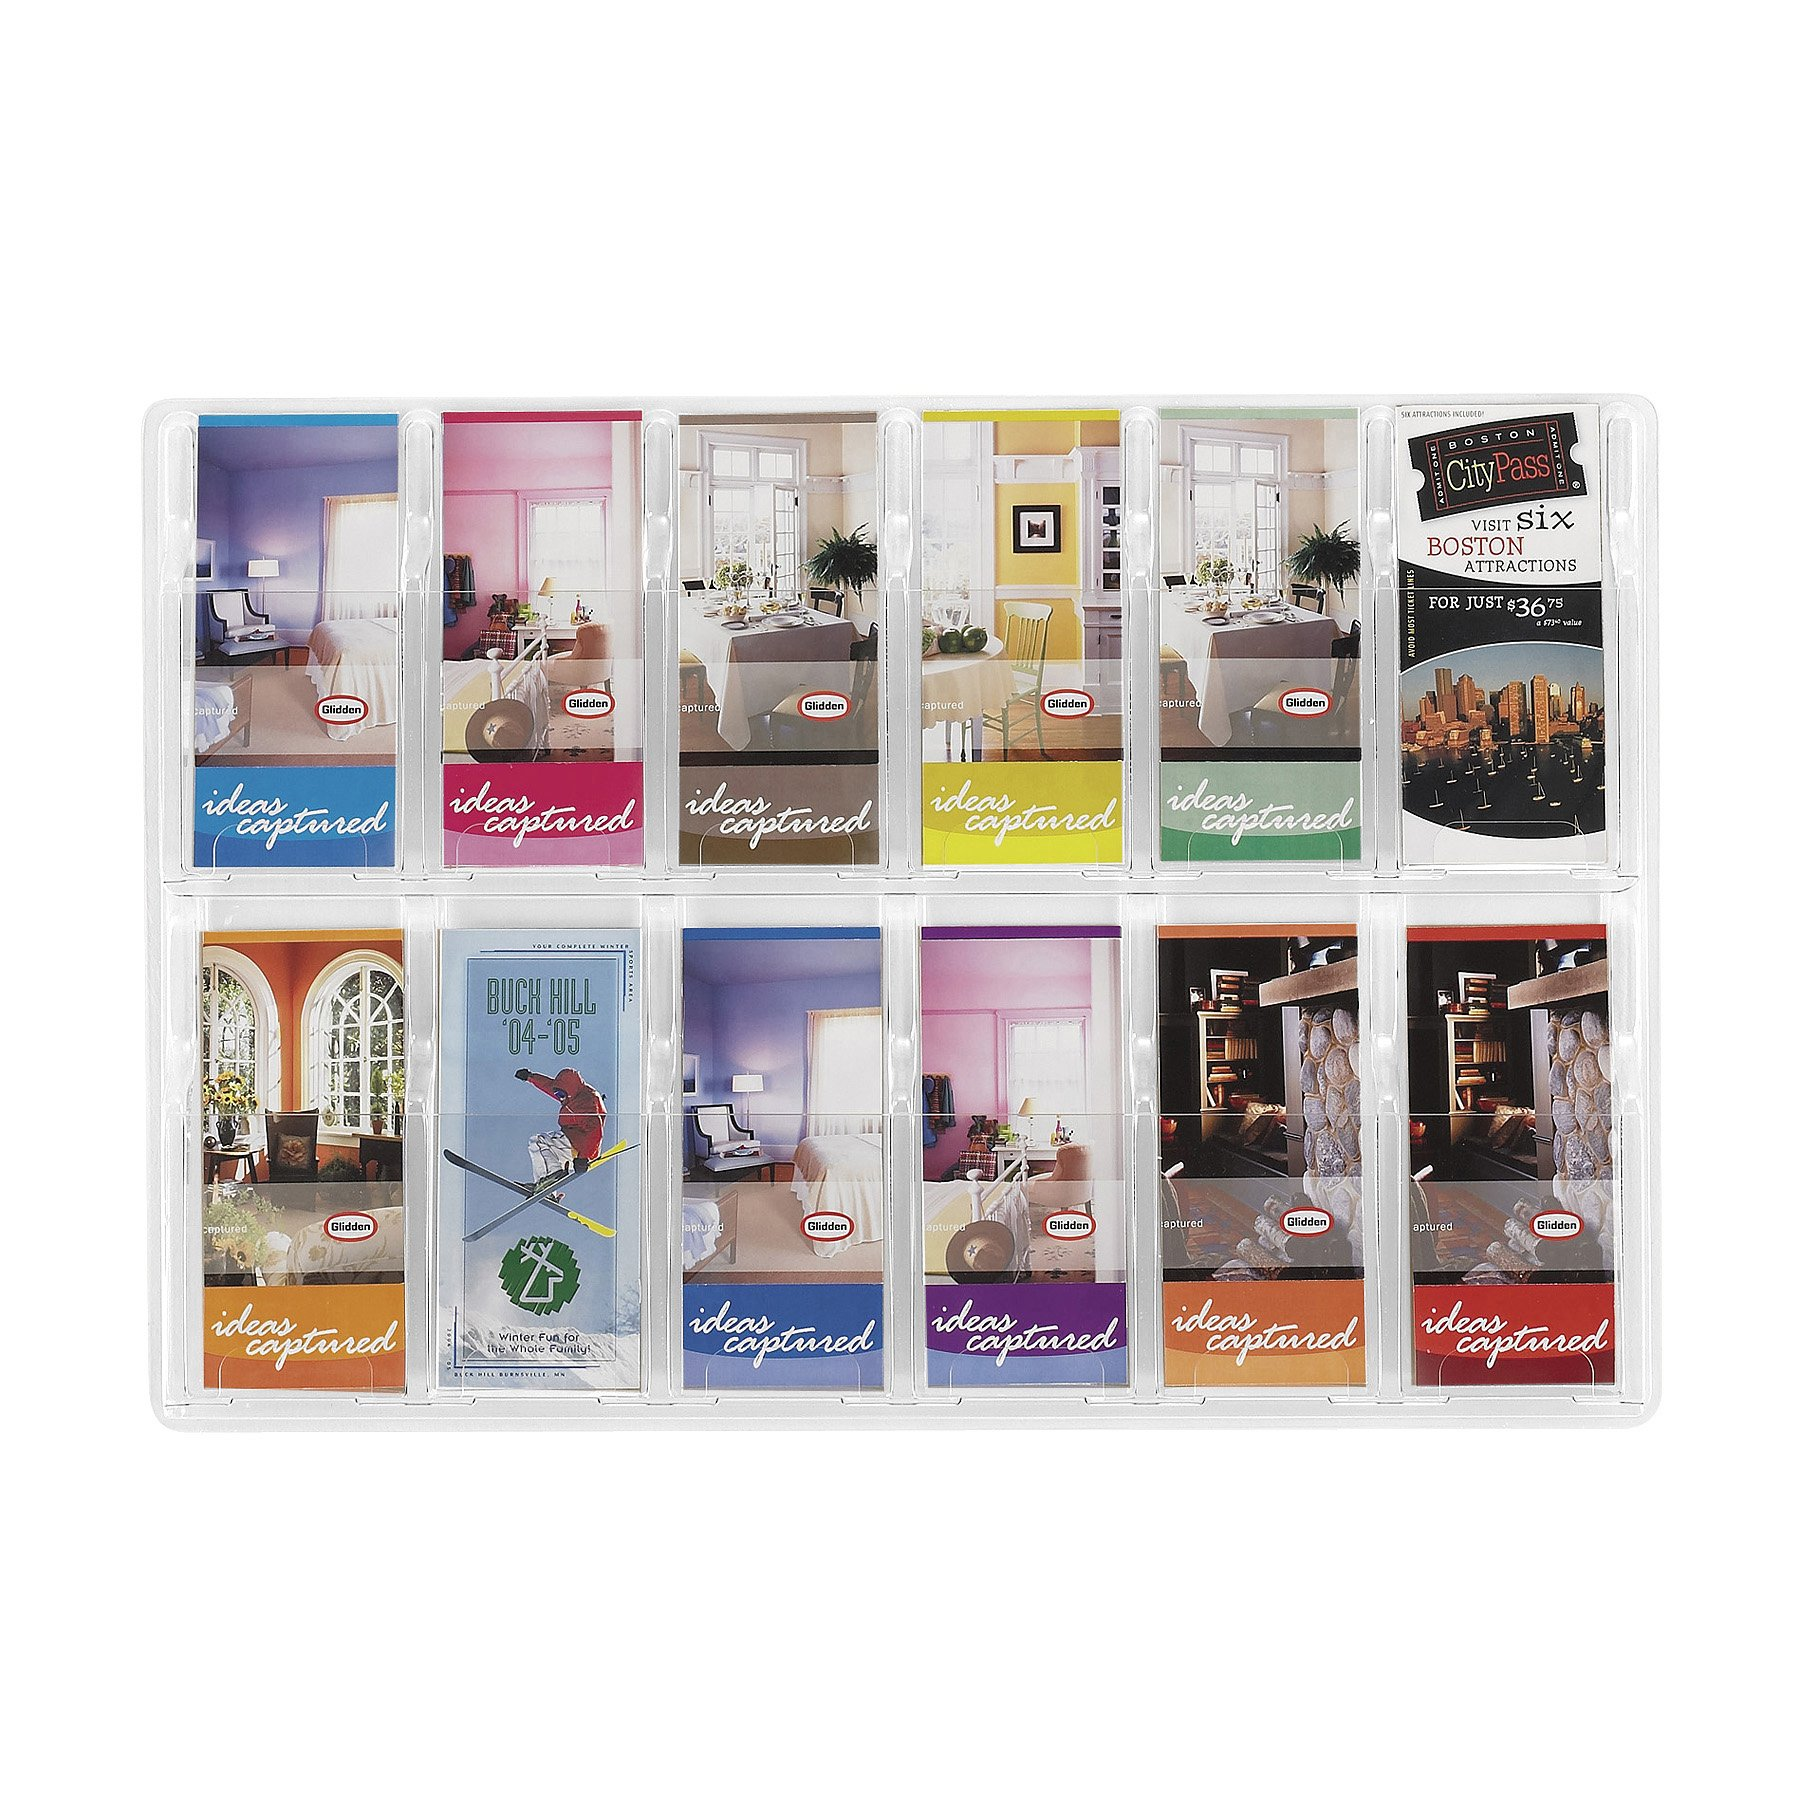 Safco Products Reveal 12 Pamphlet Display, 5604CL, Wall Mountable, Thermoformed Plastic Resin Construction, No Sharp Edges or Corners